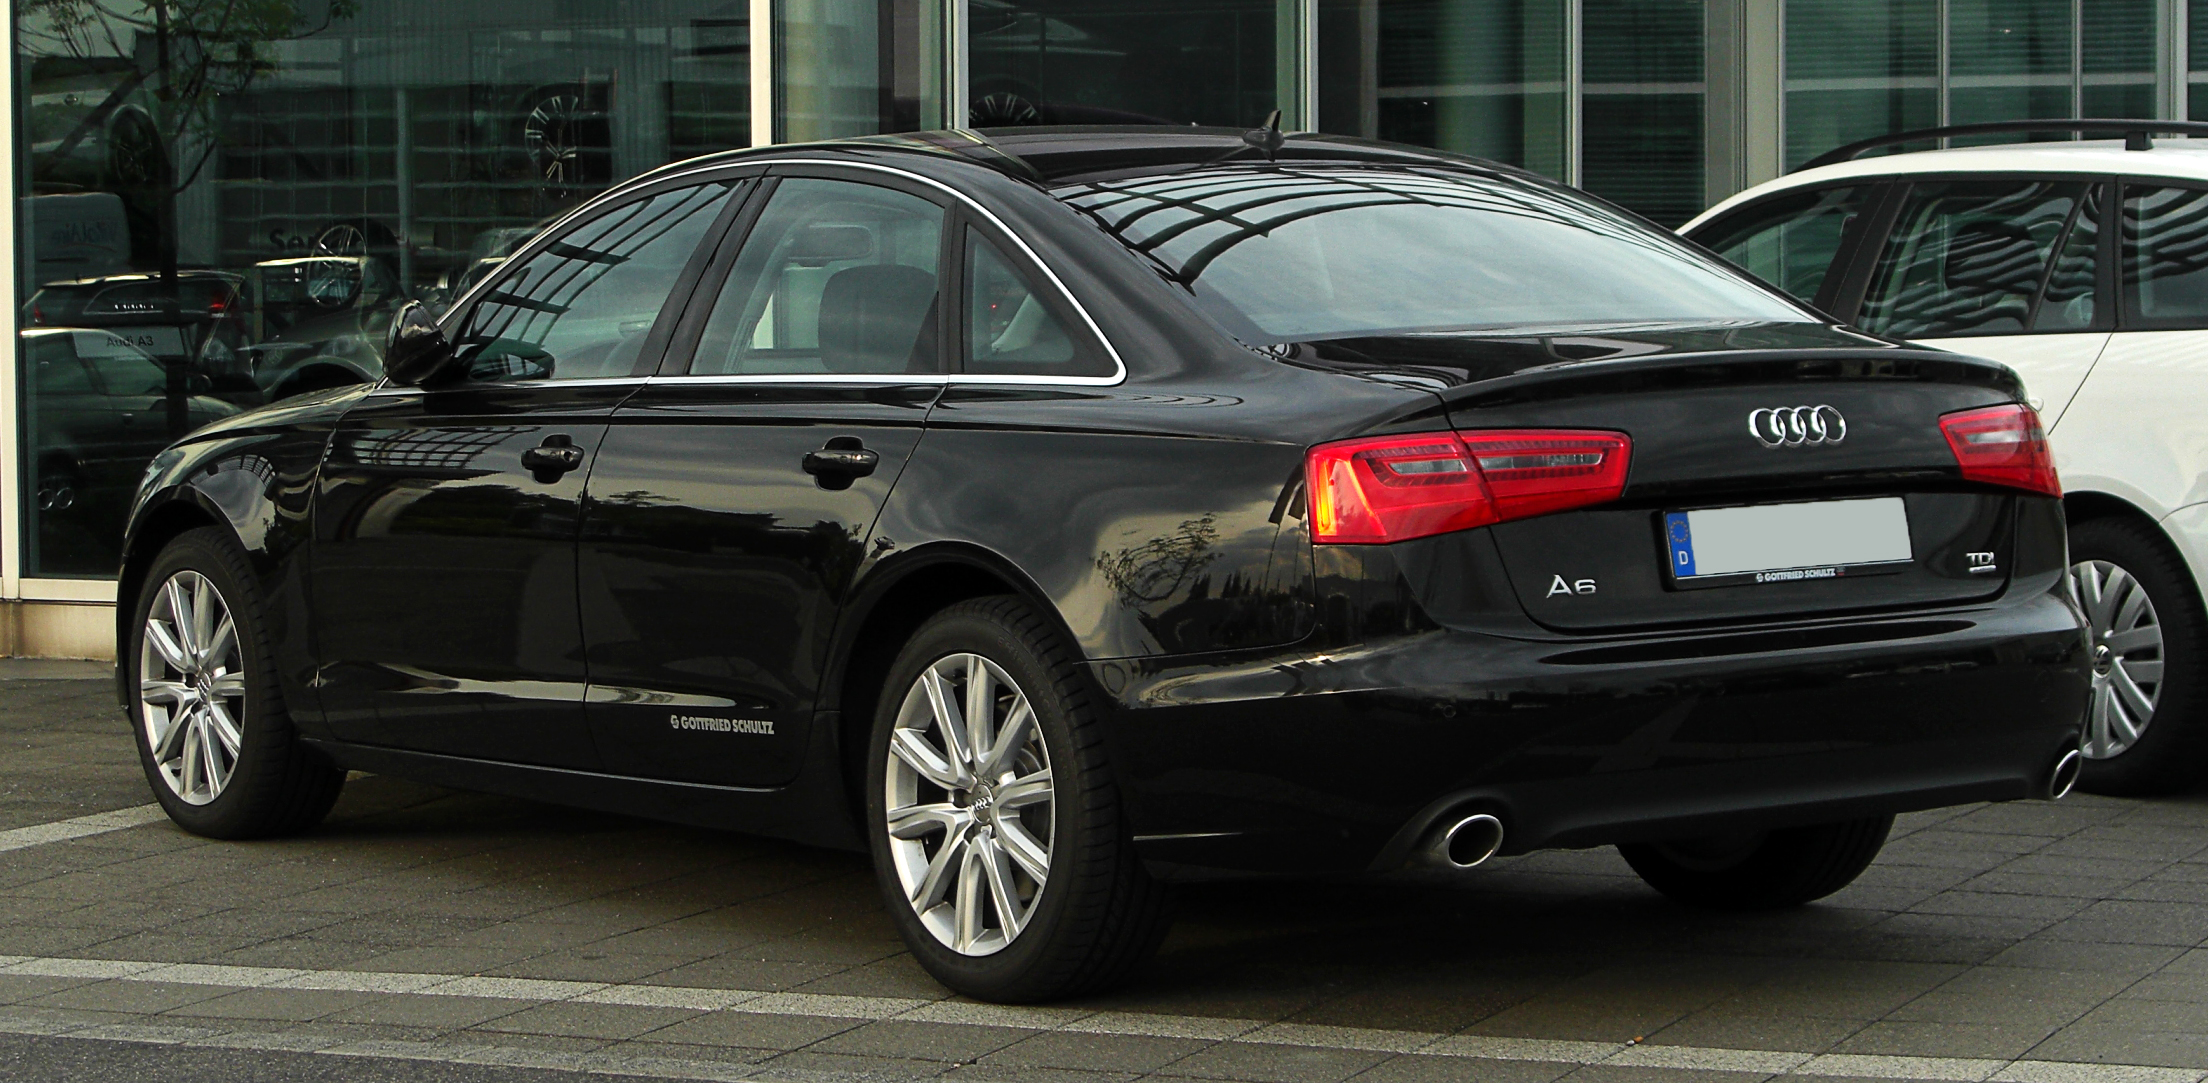 audi a6 tdi 3.0 quattro review